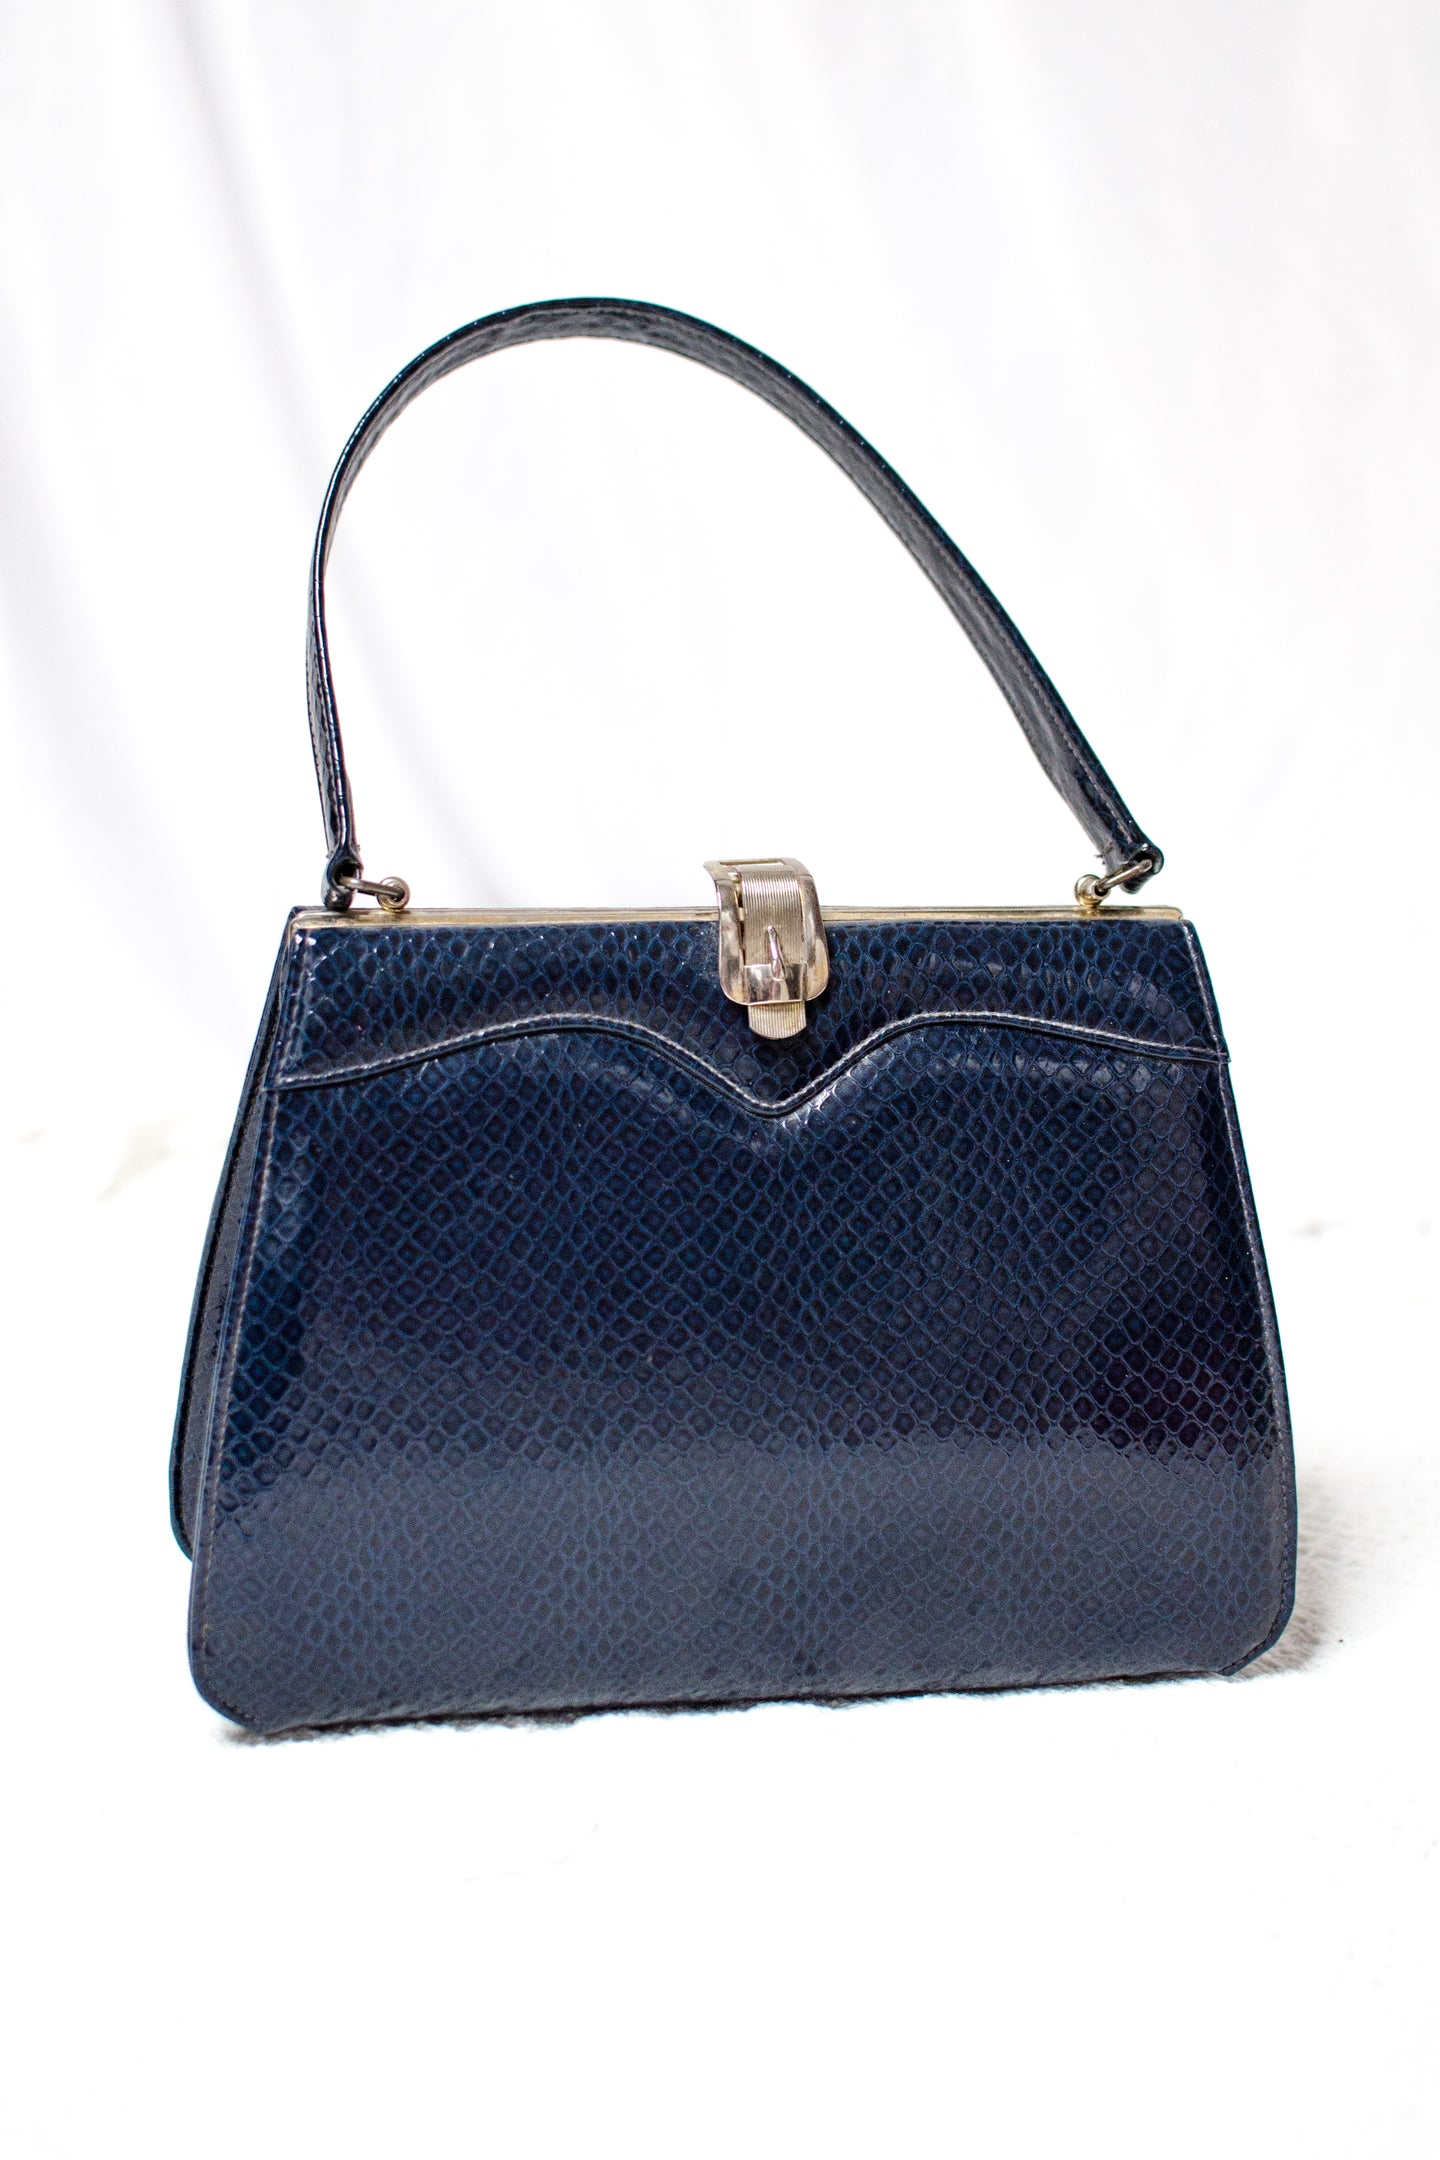 Vintage 60s Navy Reptile Print Top Handle Purse